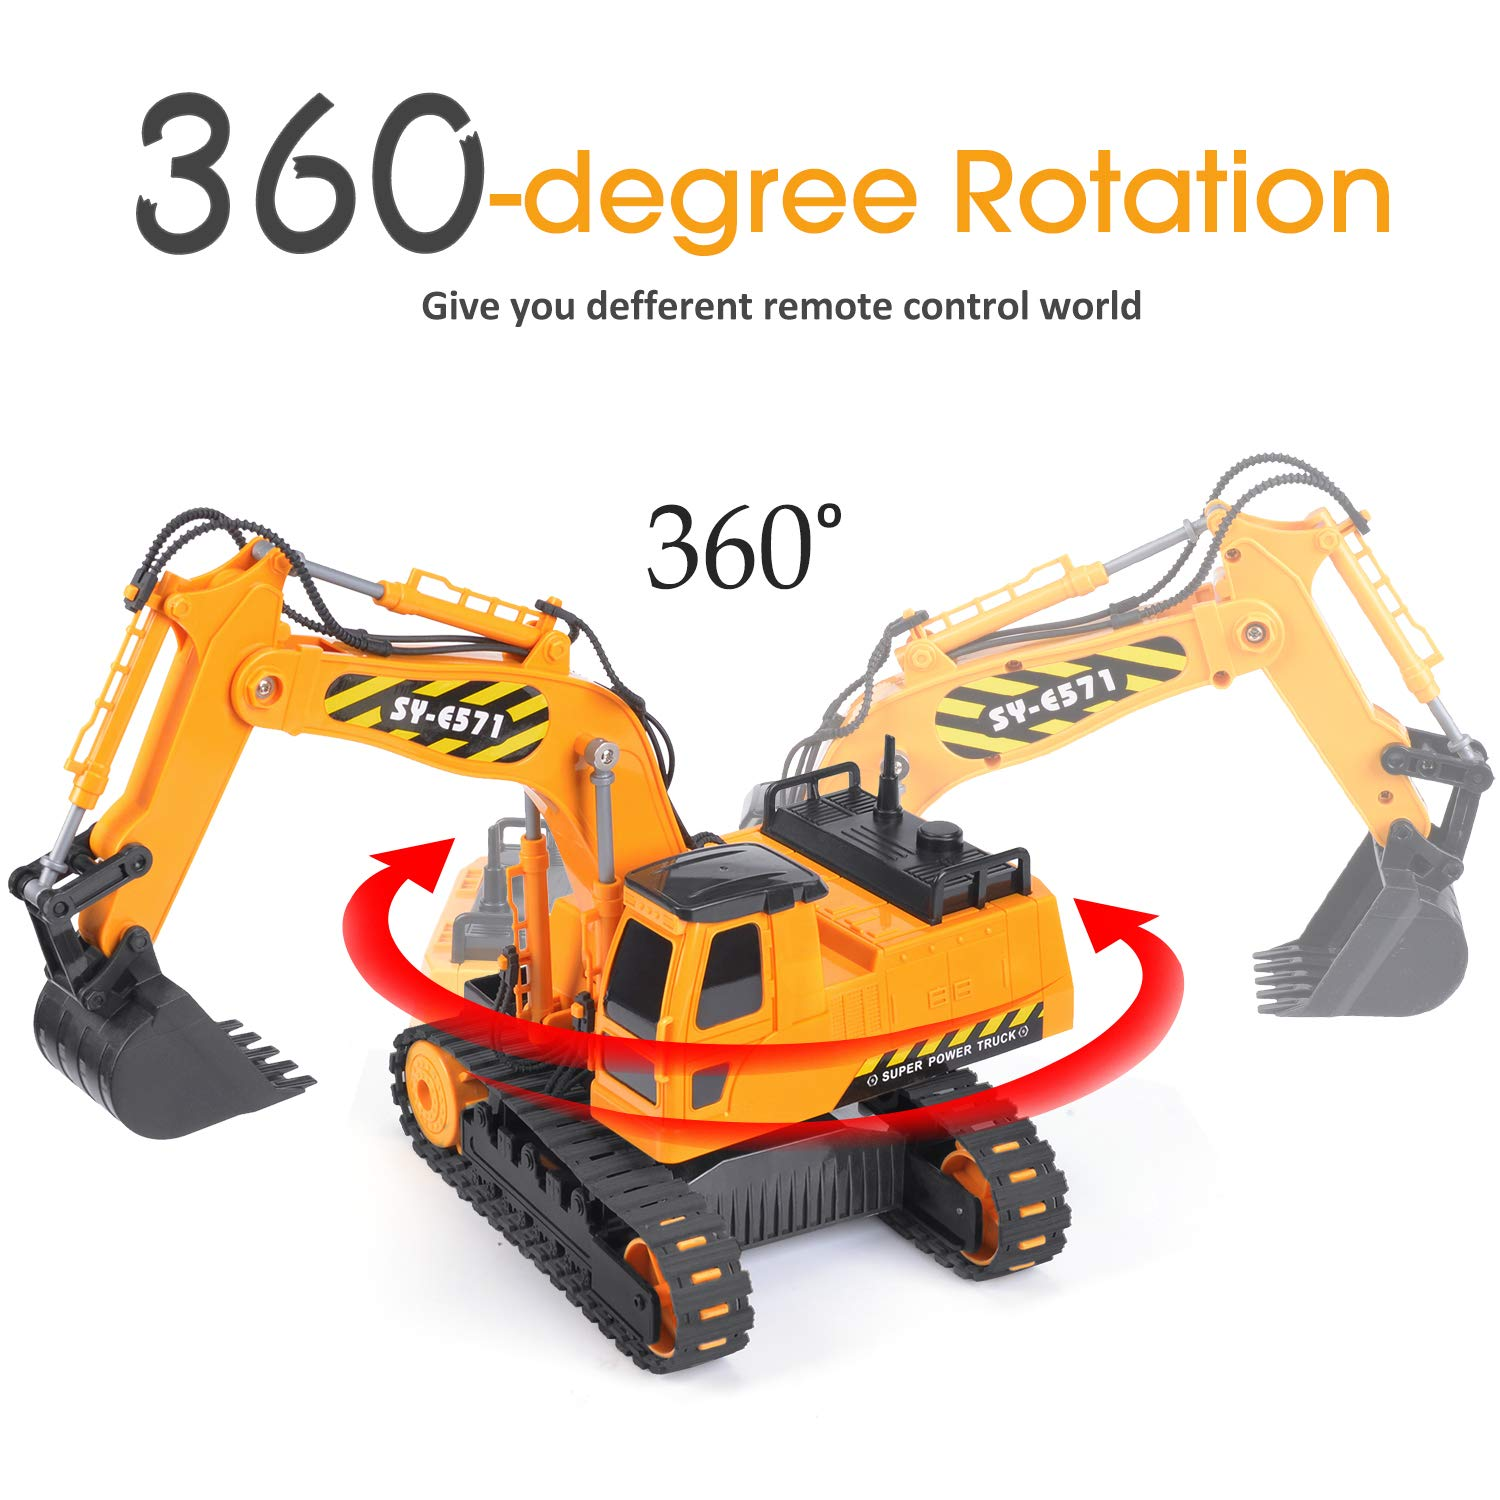 DOUBLE  E Remote Control Truck RC Excavator Toy with Rechargeable Battery Lights and Sounds 2.4GHz Construction Vehicles Tractor 1/26 by DOUBLE  E (Image #3)